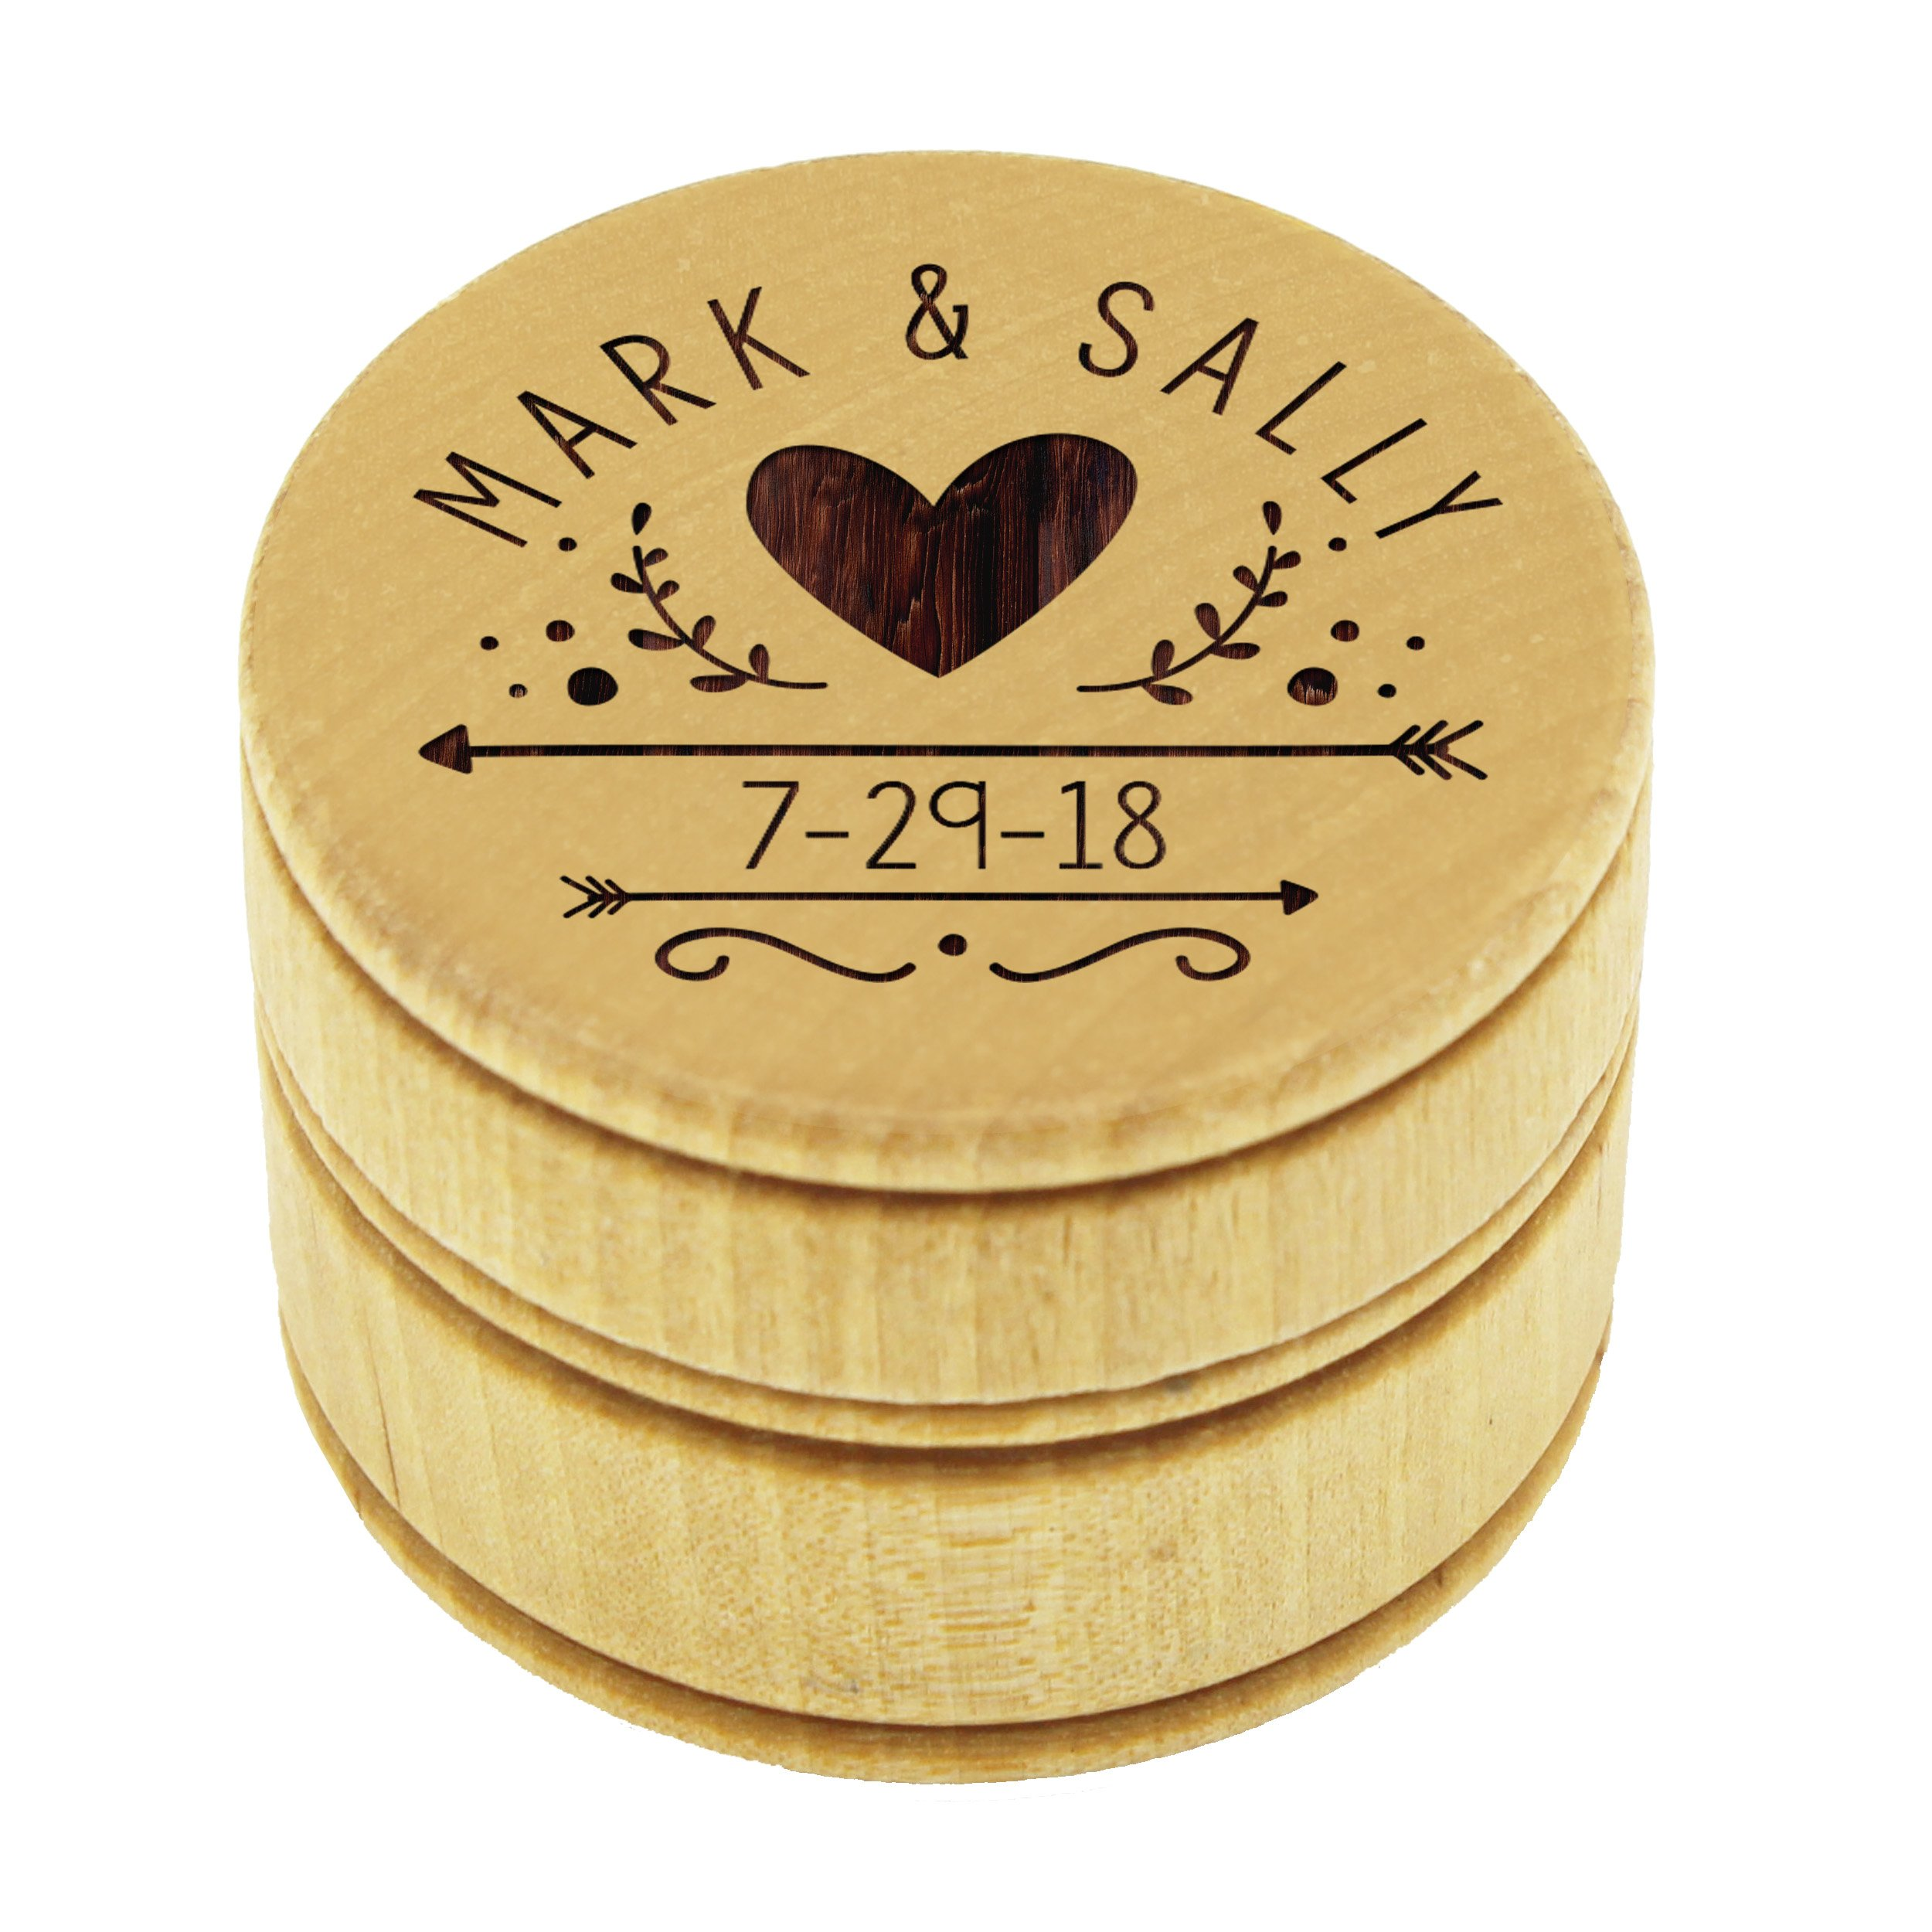 Personalized Ring Bearer Pillow Alternative - Custom Engraved Wood Ring Box Holder - Monogrammed for Free by My Personal Memories (Image #5)